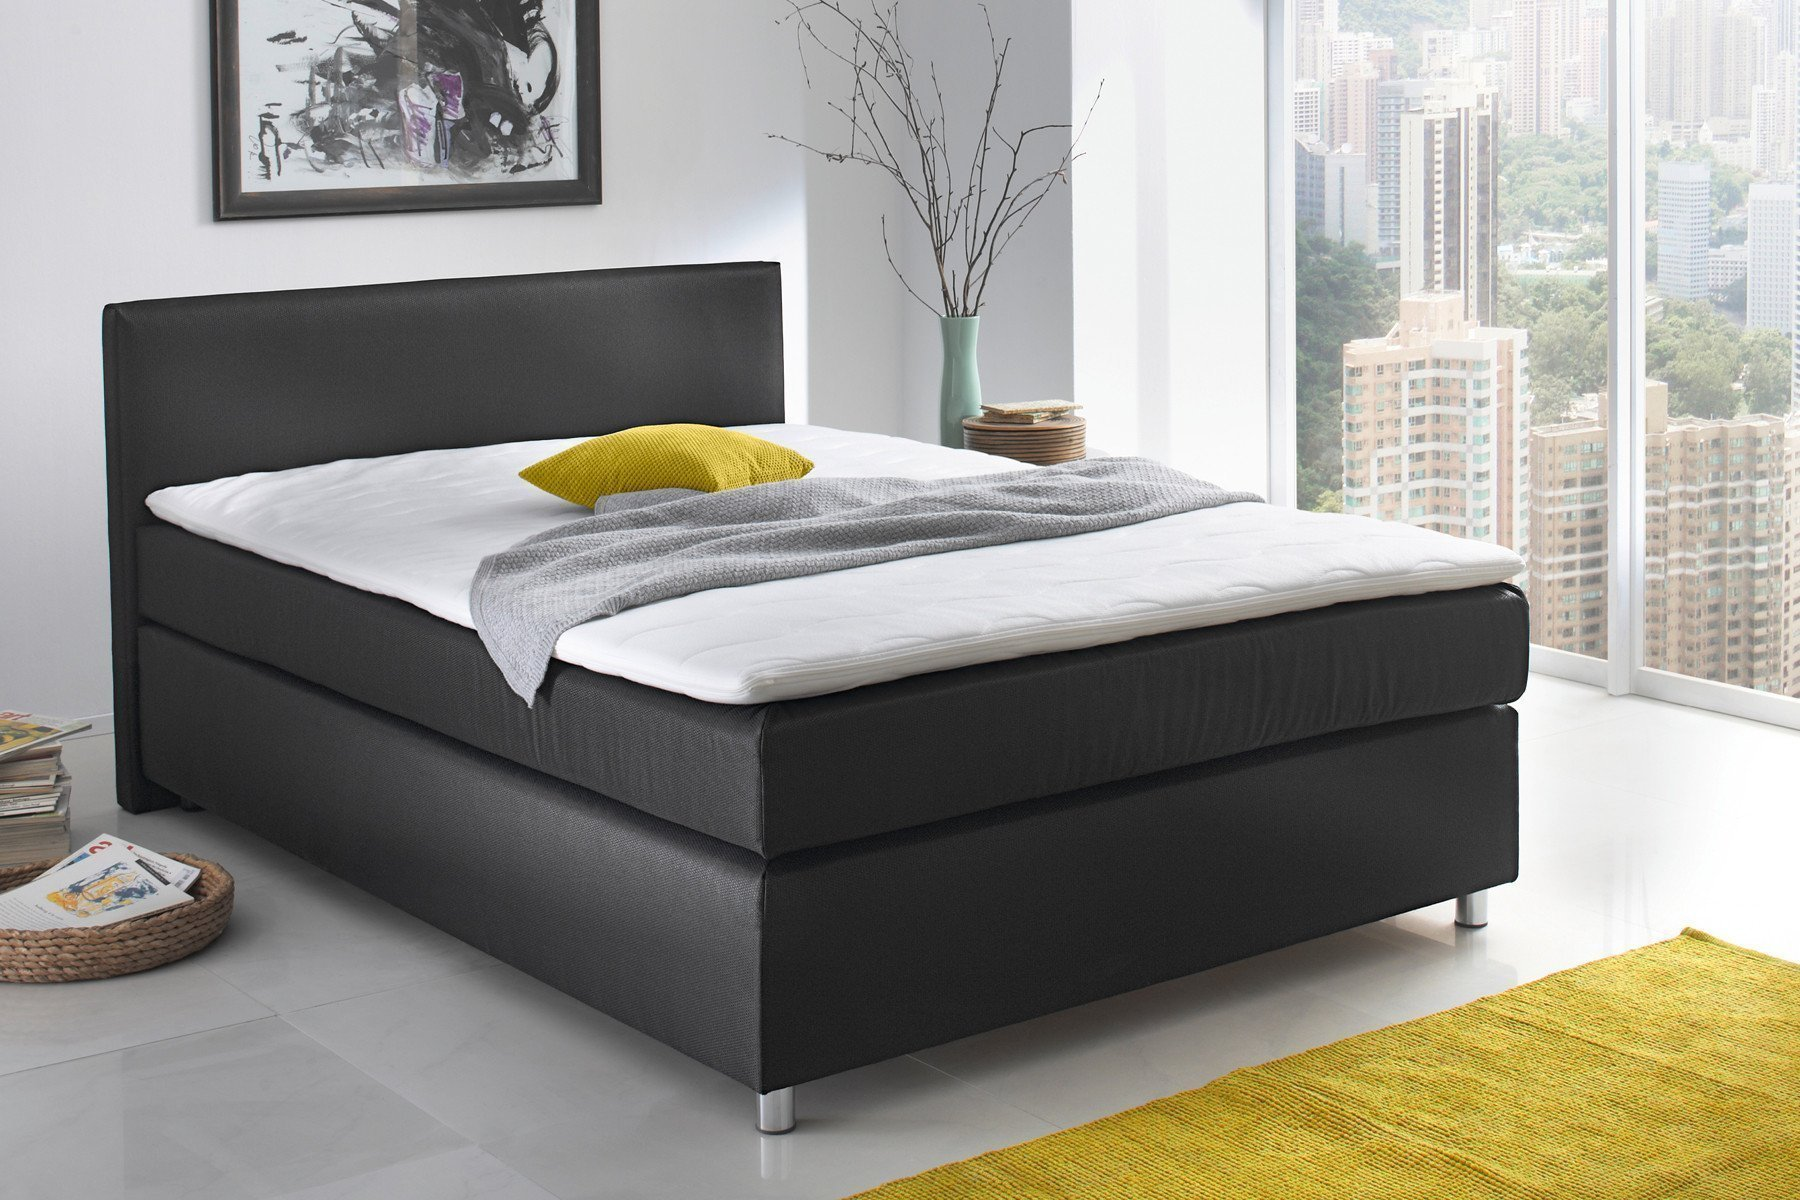 boxspringbett ascot callida schwarz von jockenh fer m bel letz ihr online shop. Black Bedroom Furniture Sets. Home Design Ideas